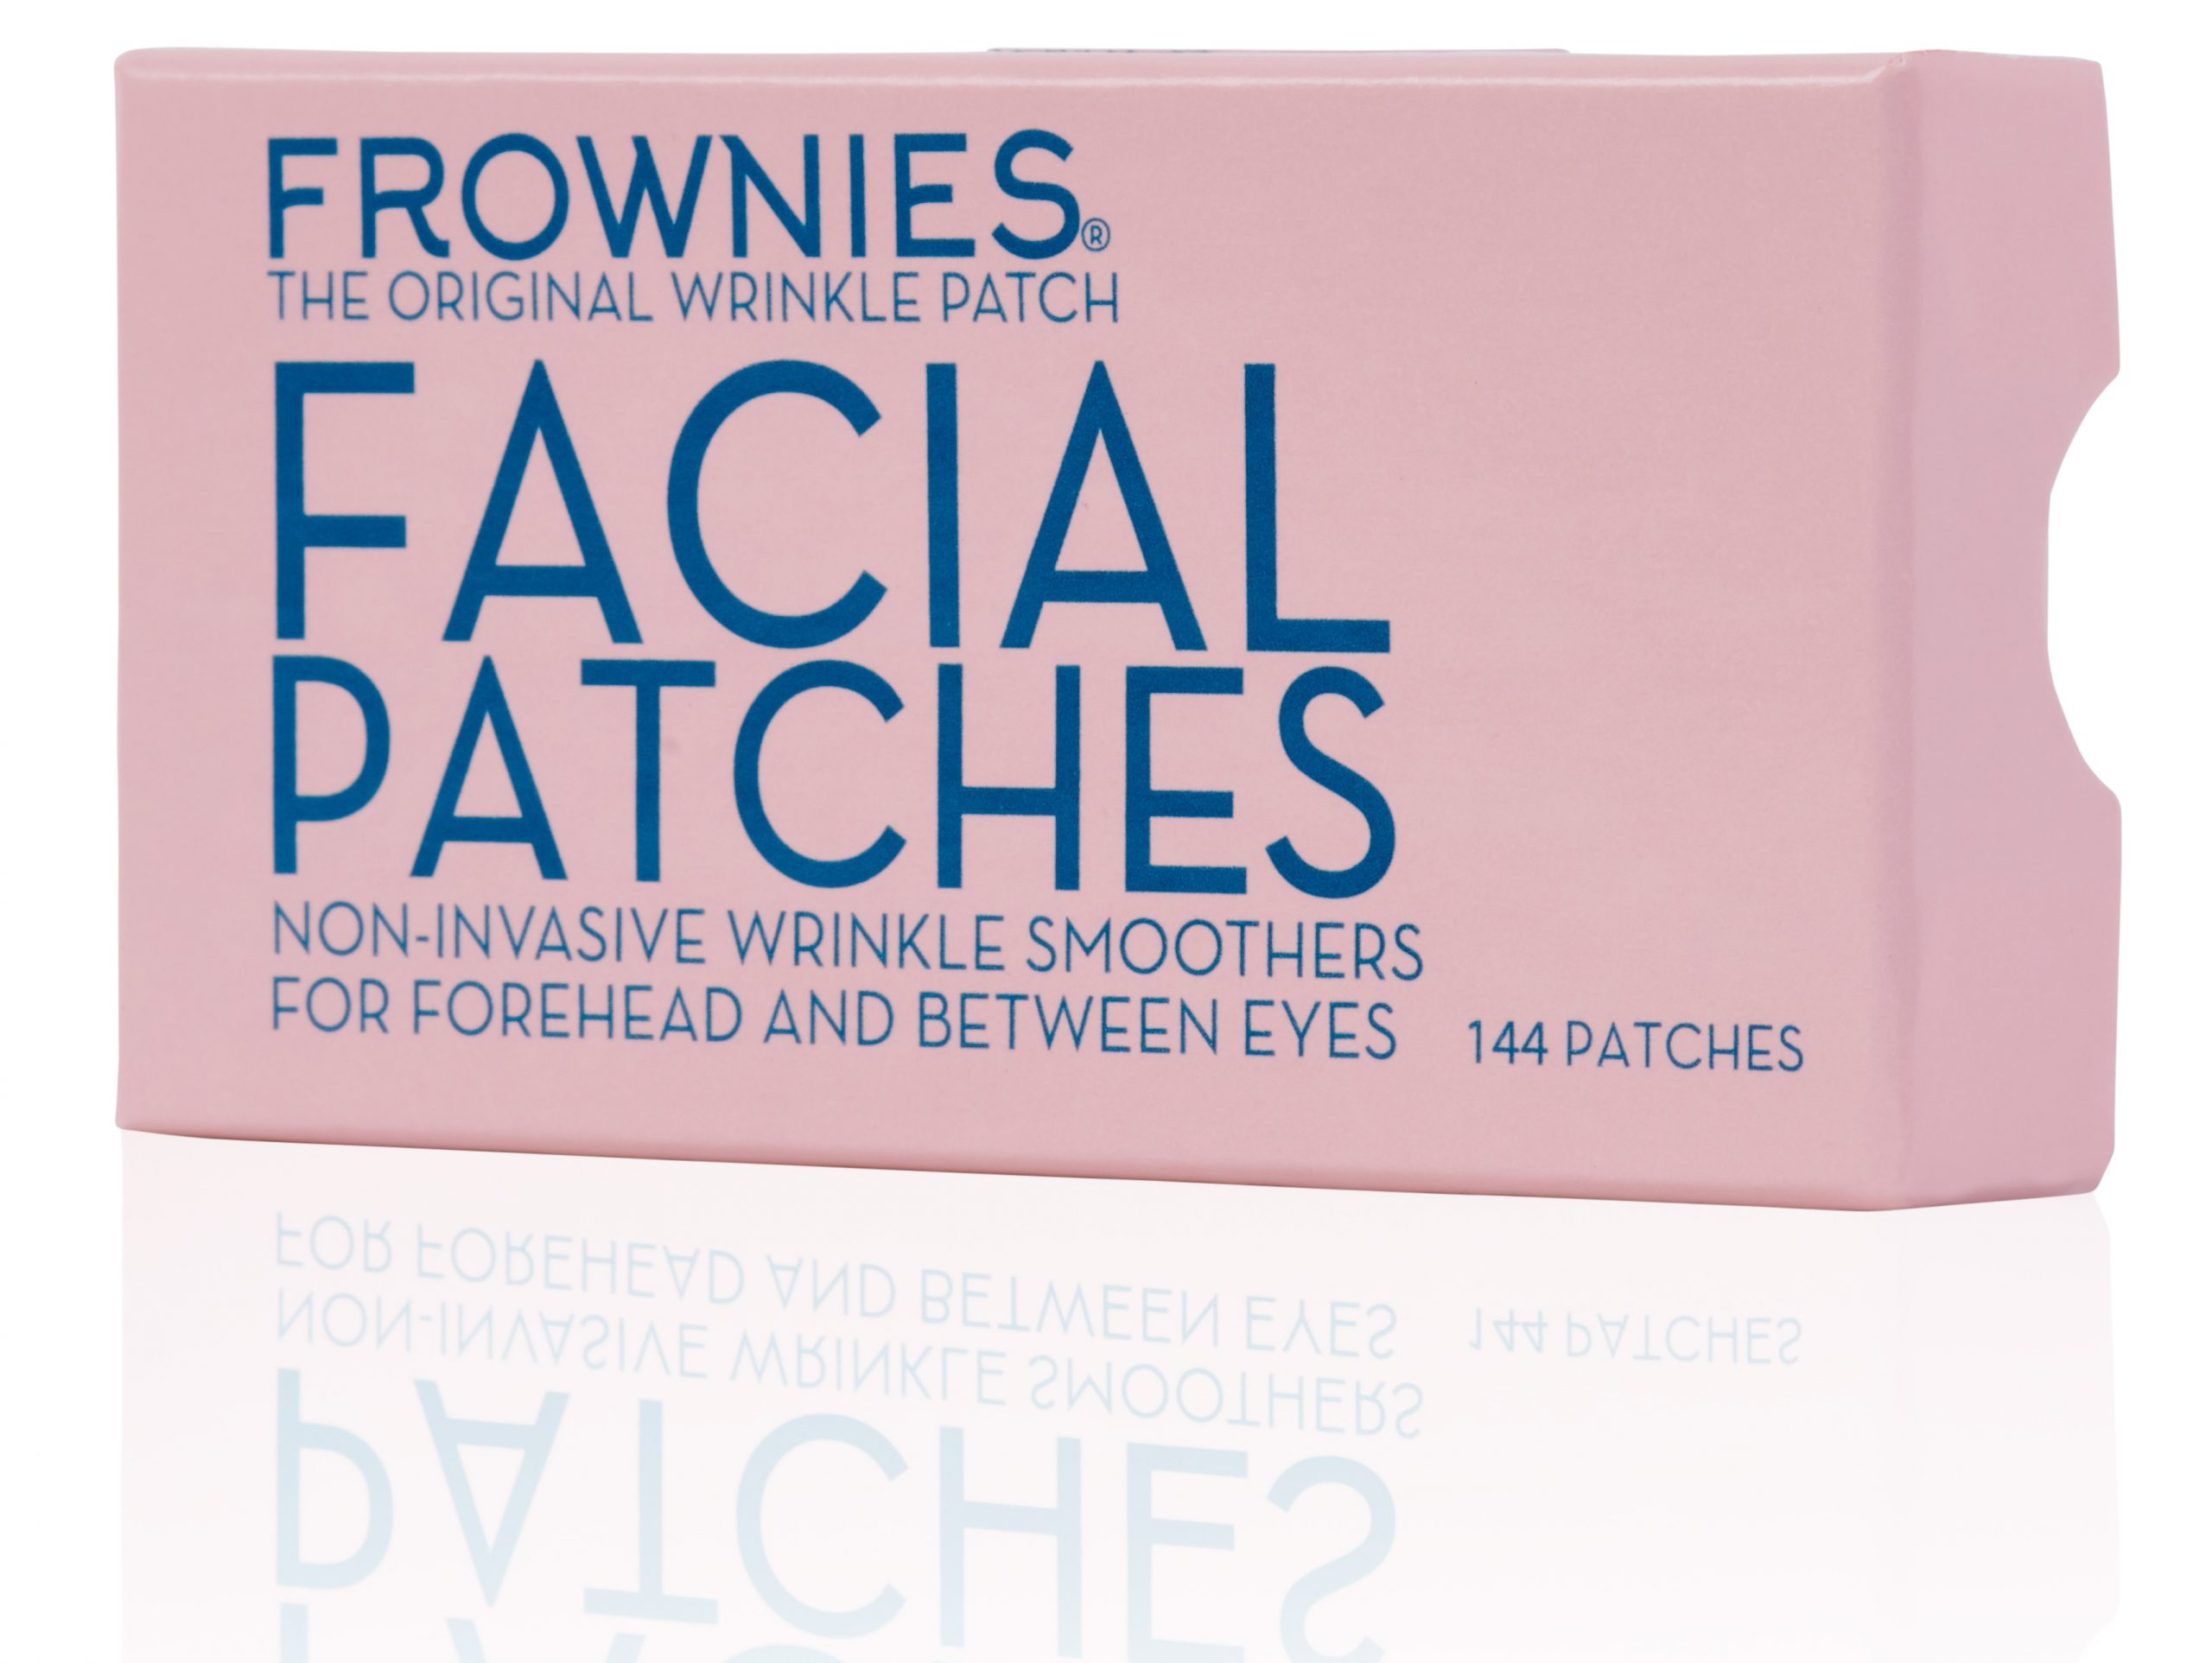 Frownies see surge in orders as a safe BOTOX® alternative during pandemic lock-down